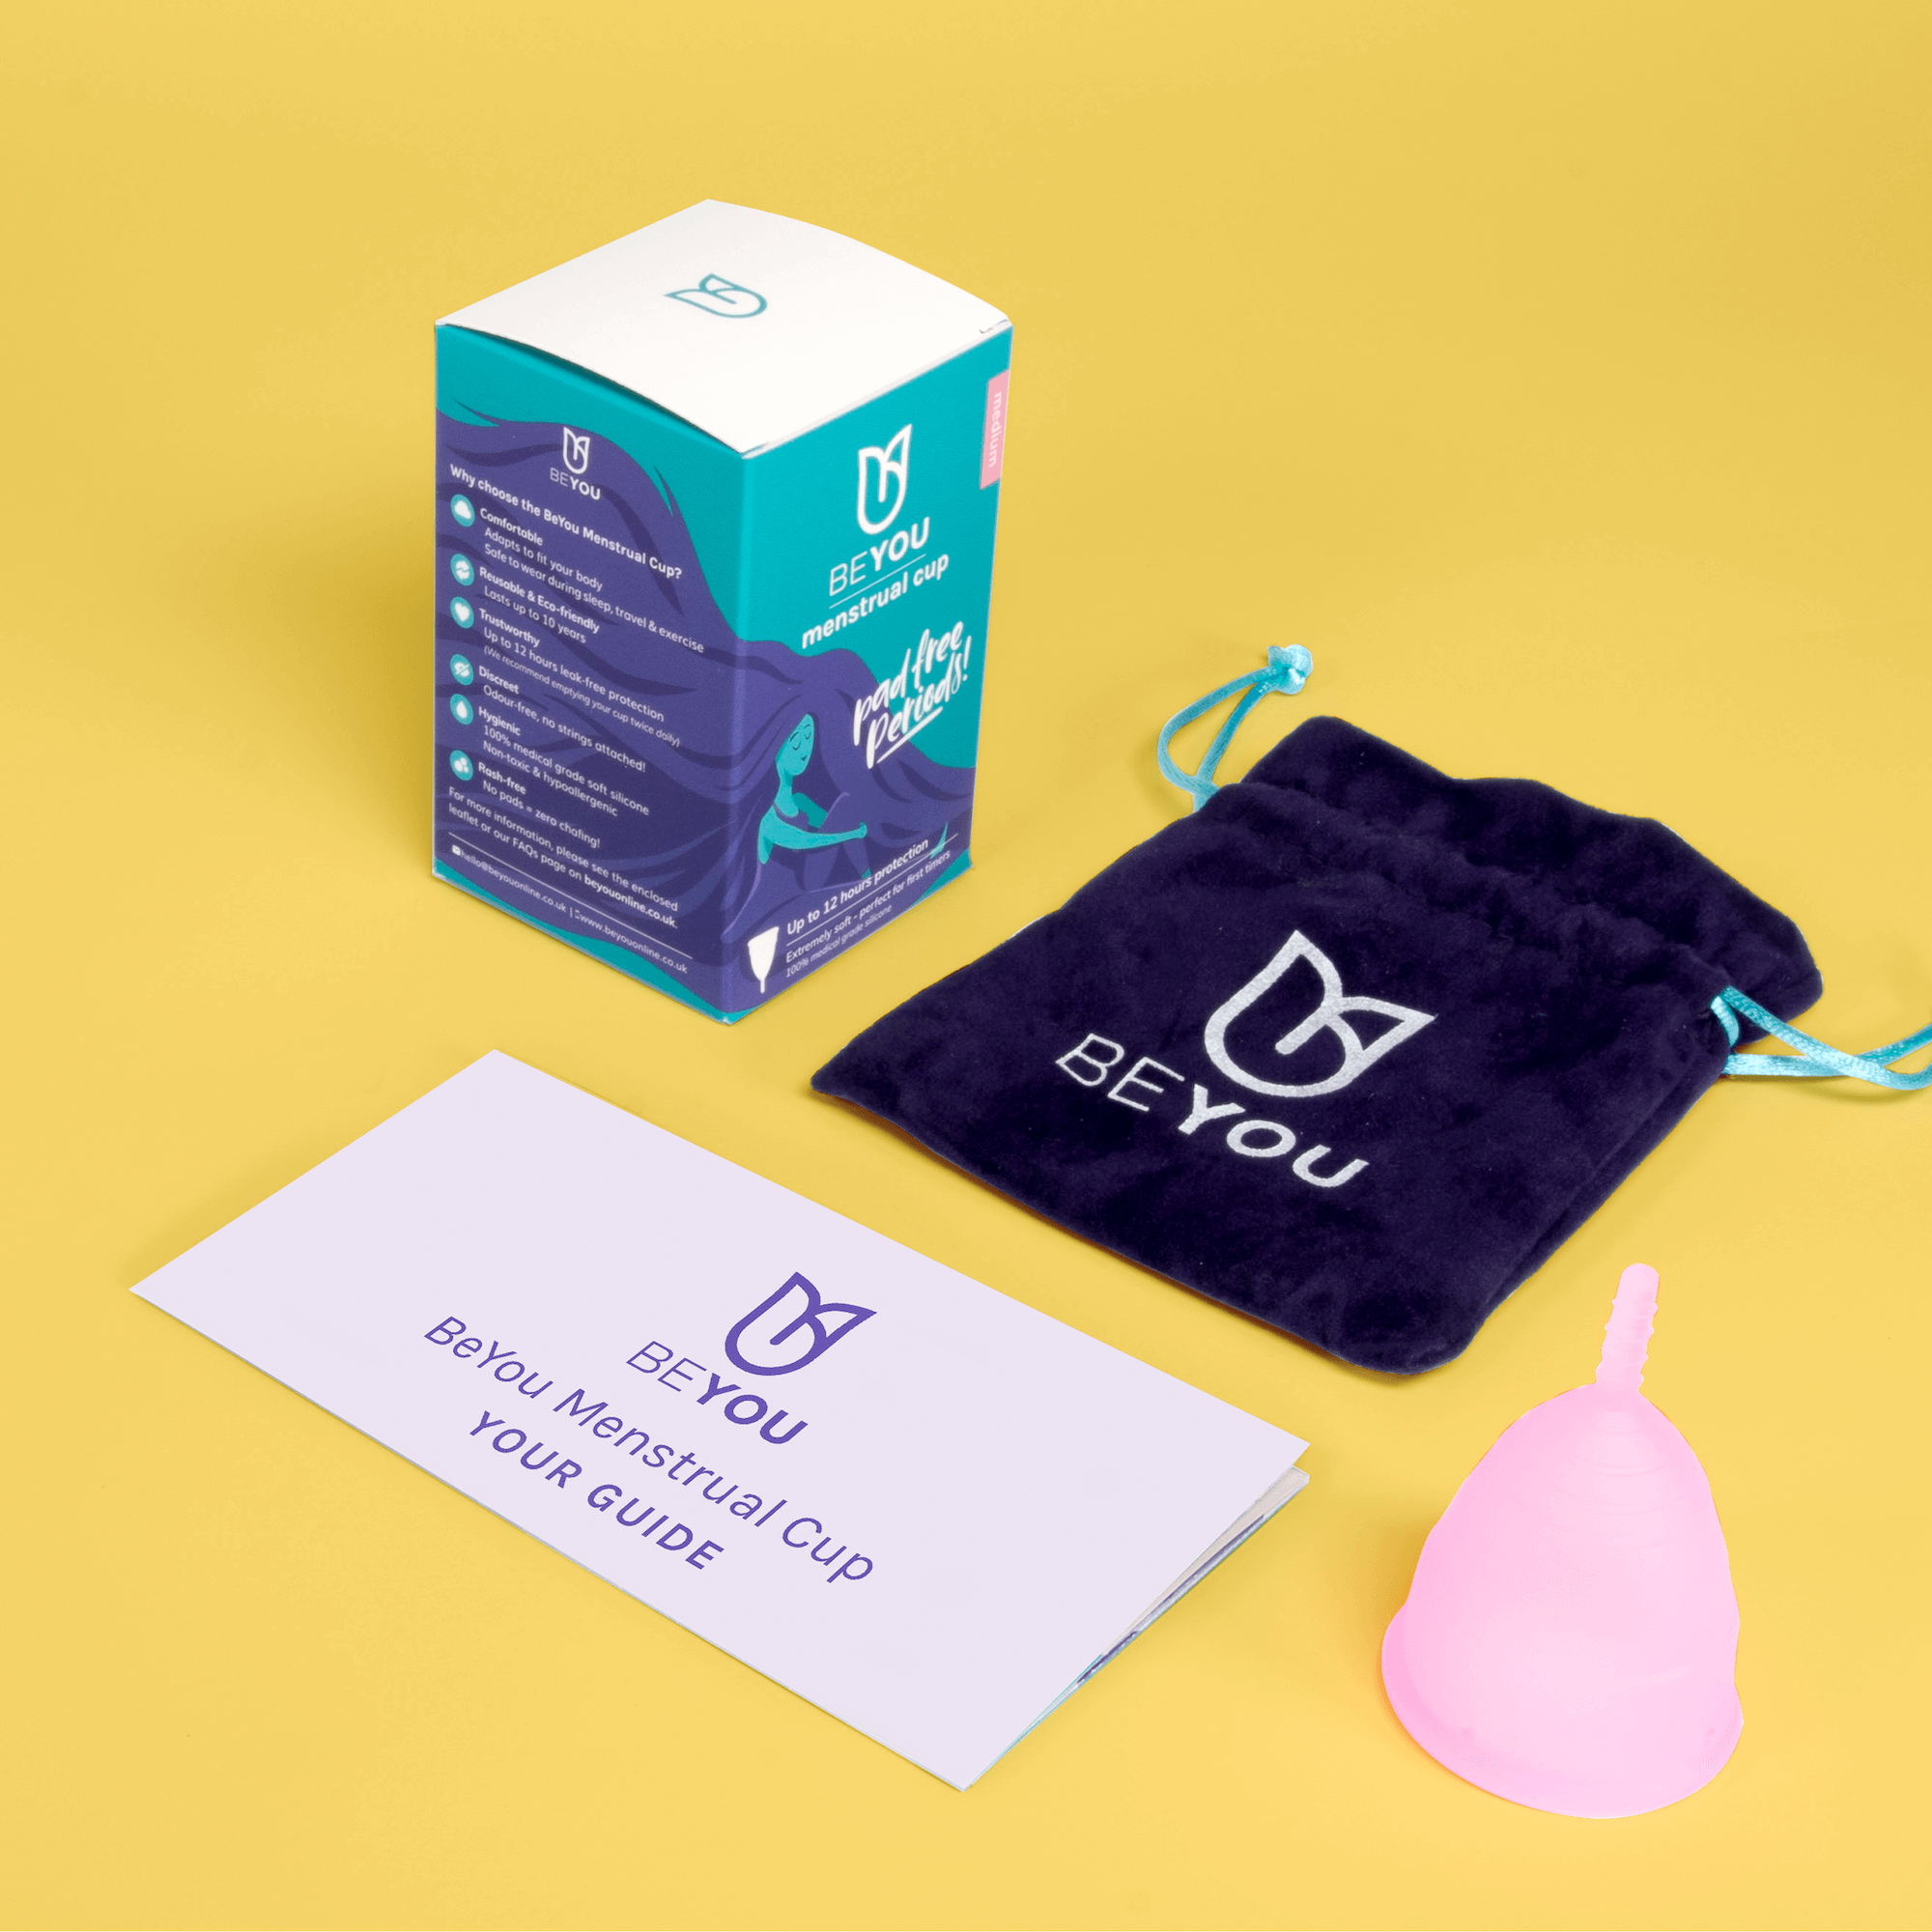 menstrual cup comes with a carry pouch and a guide